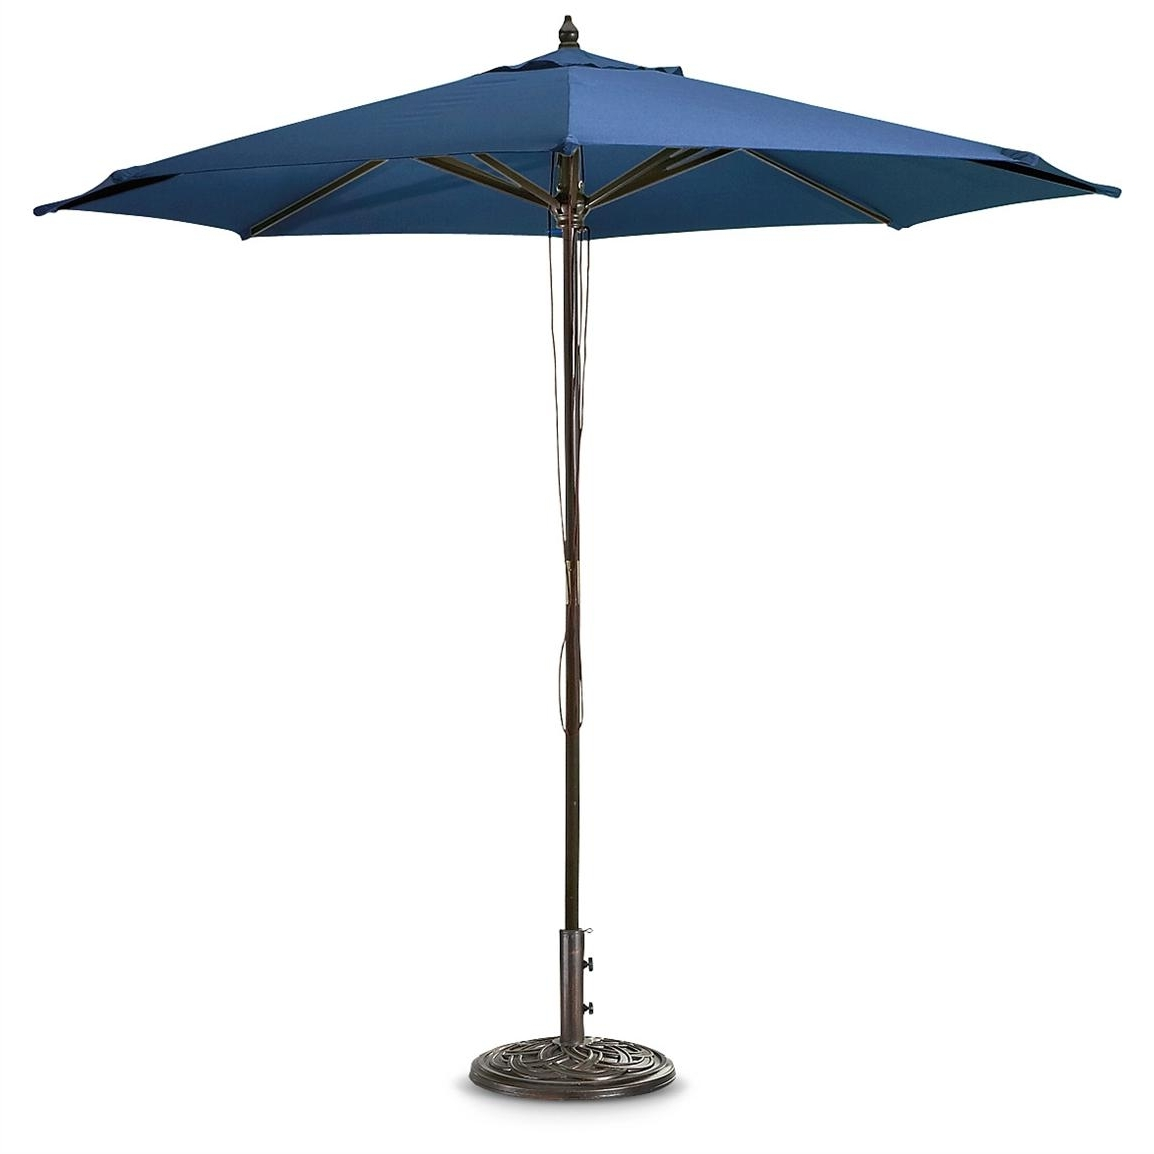 Grey Patio Umbrellas Within Newest Castlecreek 9' Market Patio Umbrella – 234561, Patio Umbrellas At (Gallery 8 of 20)